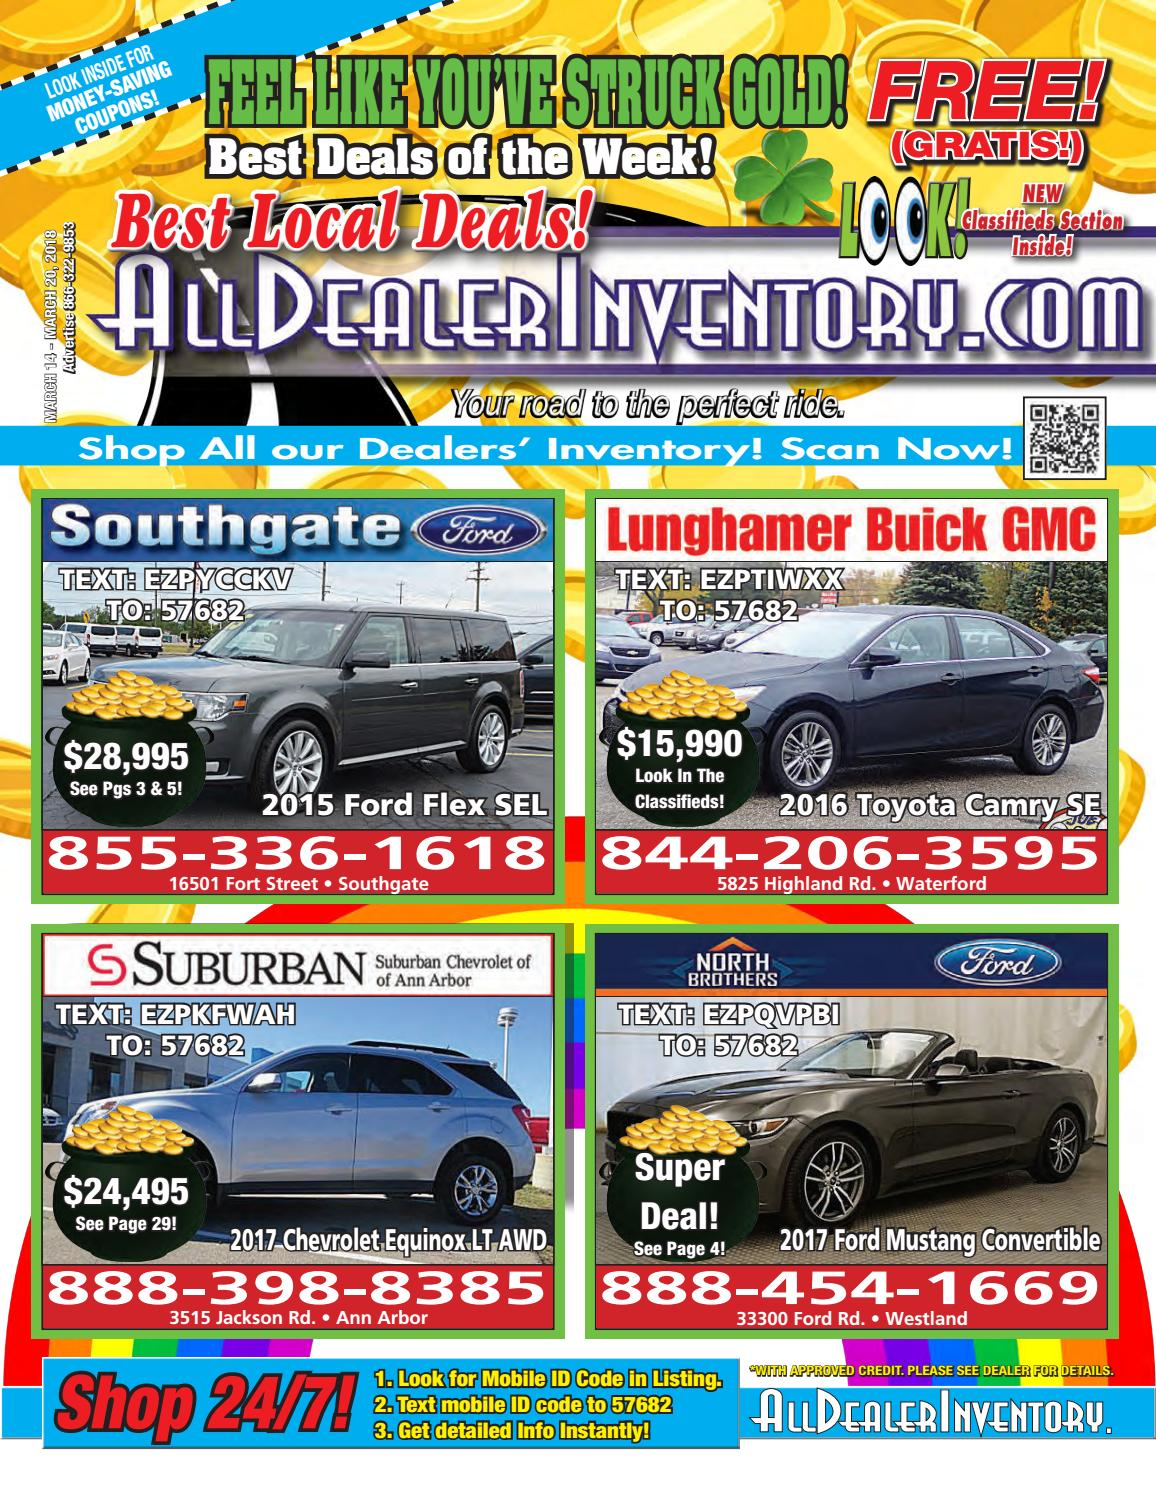 Best Auto Deals >> All Dealer Inventory S March 14th Edition Shop The Best